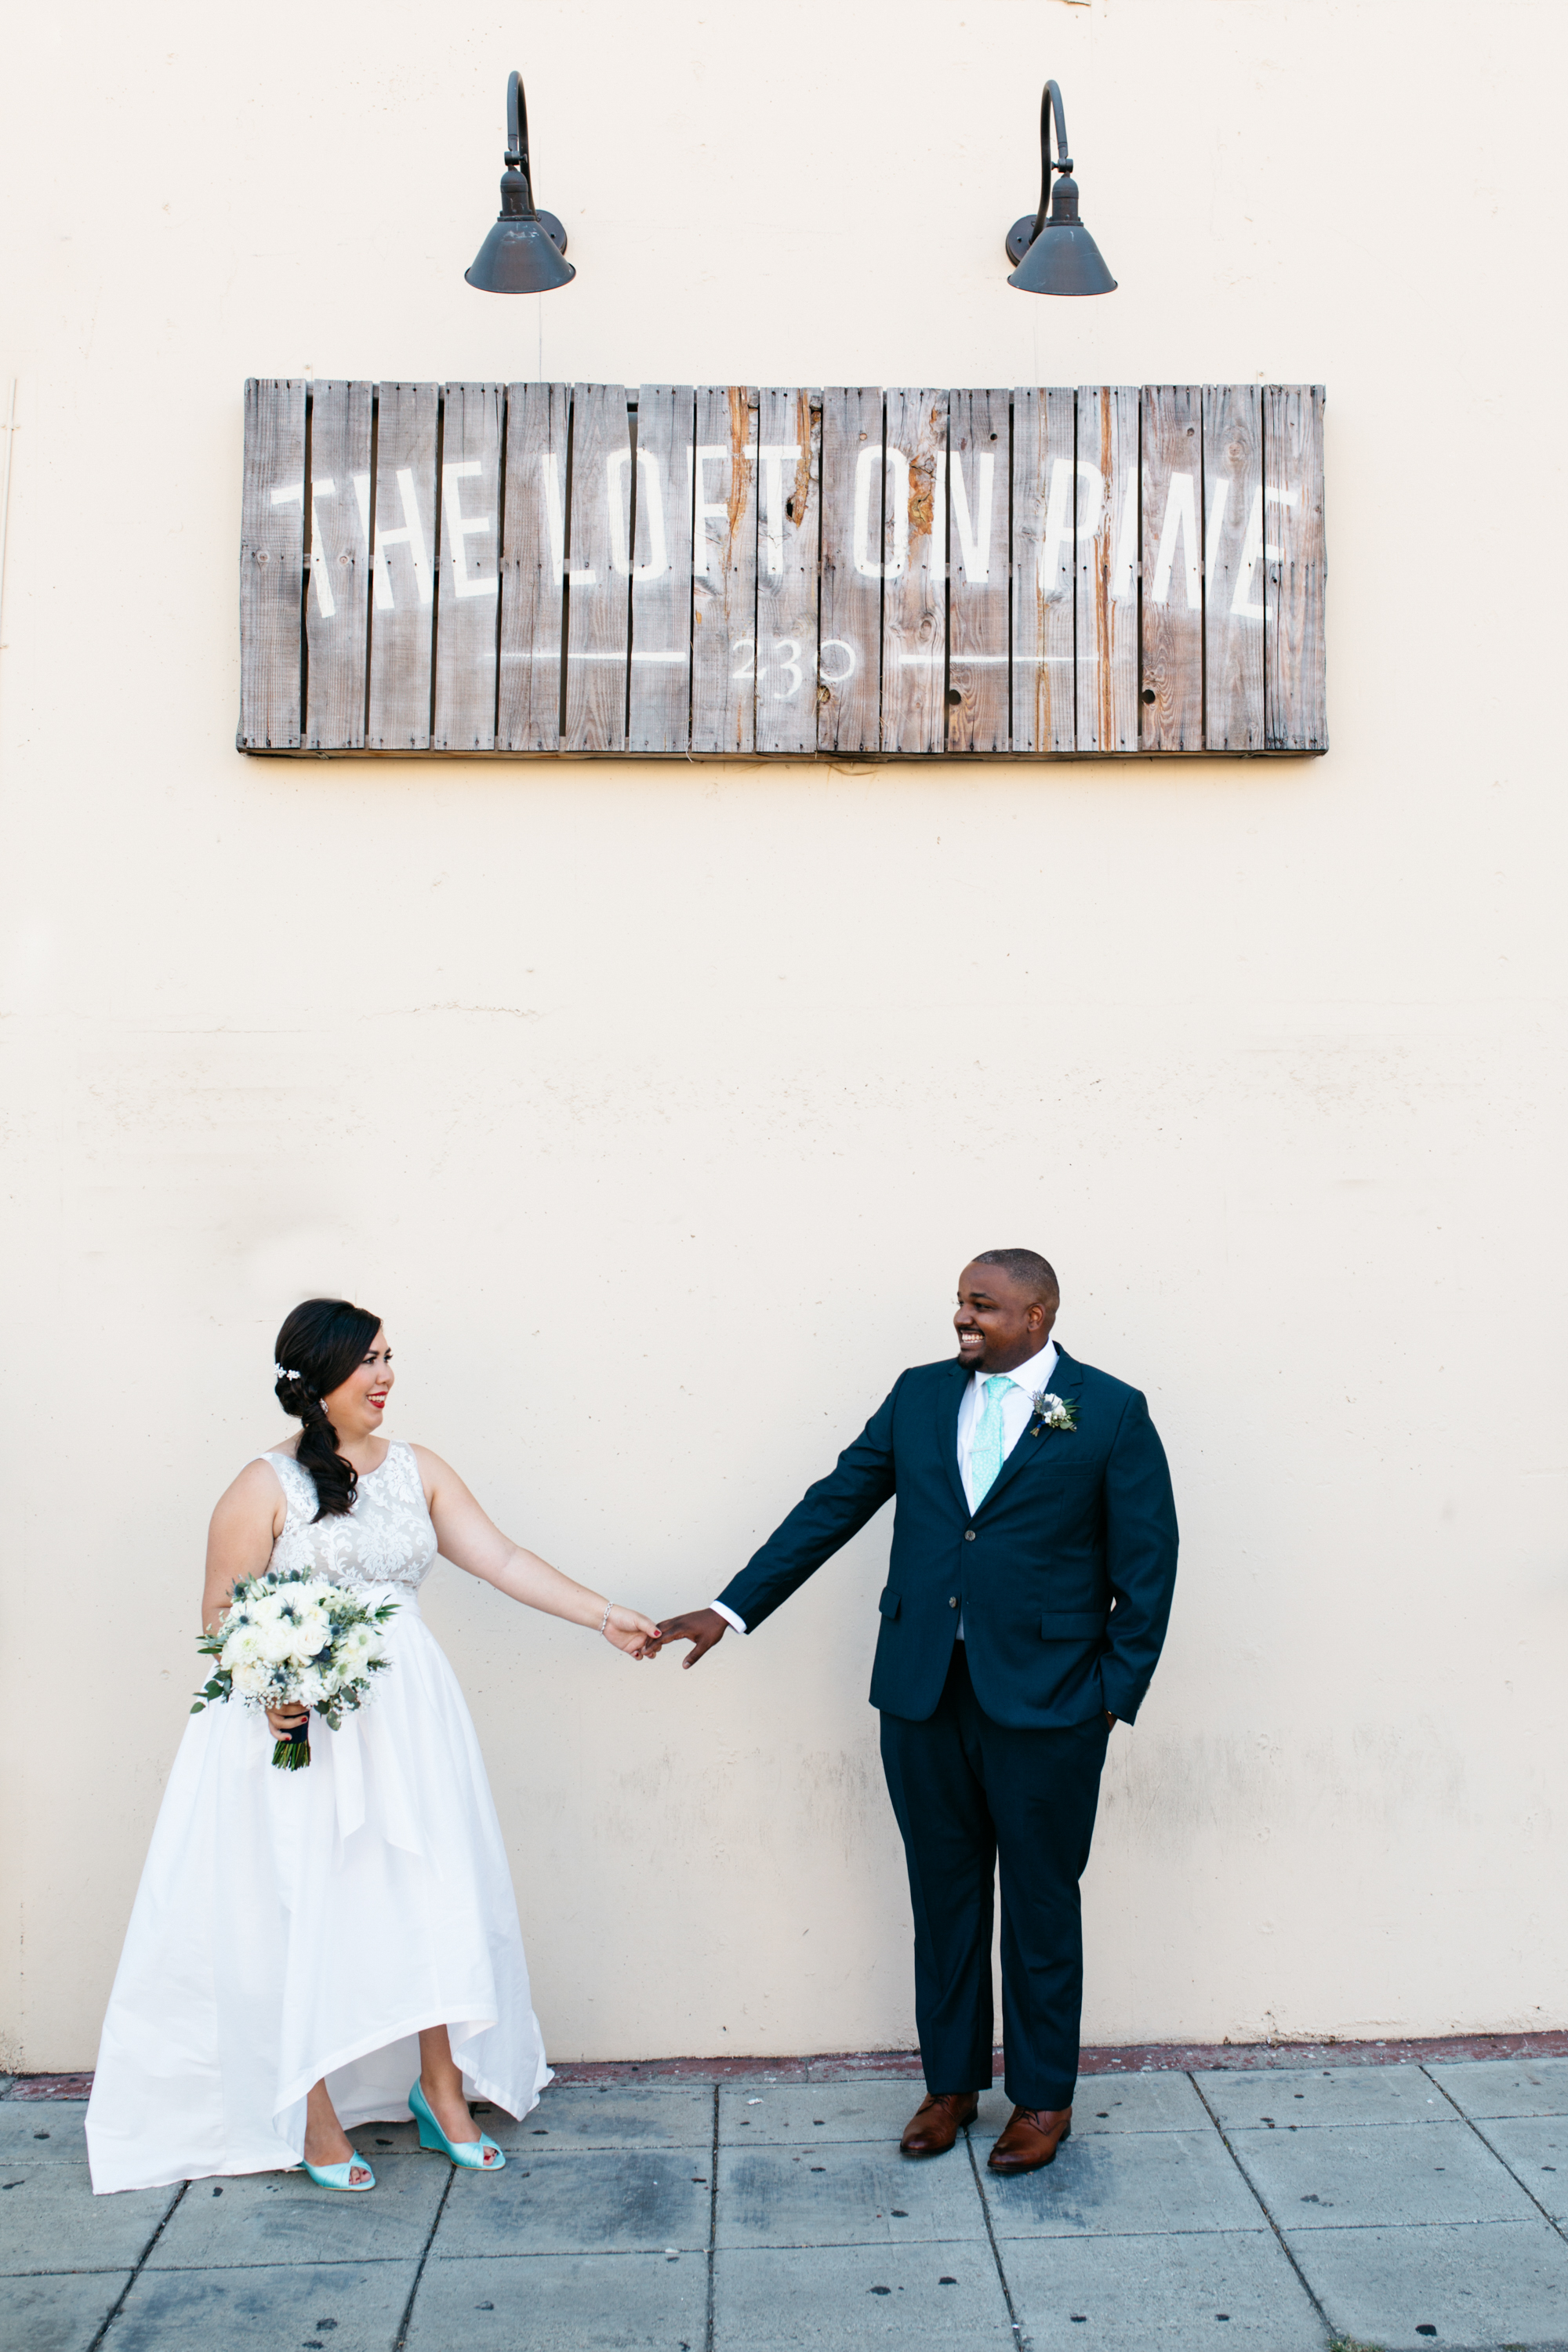 SamErica Studios - Los Angeles Wedding Photographer - The Loft on Pine-51.jpg